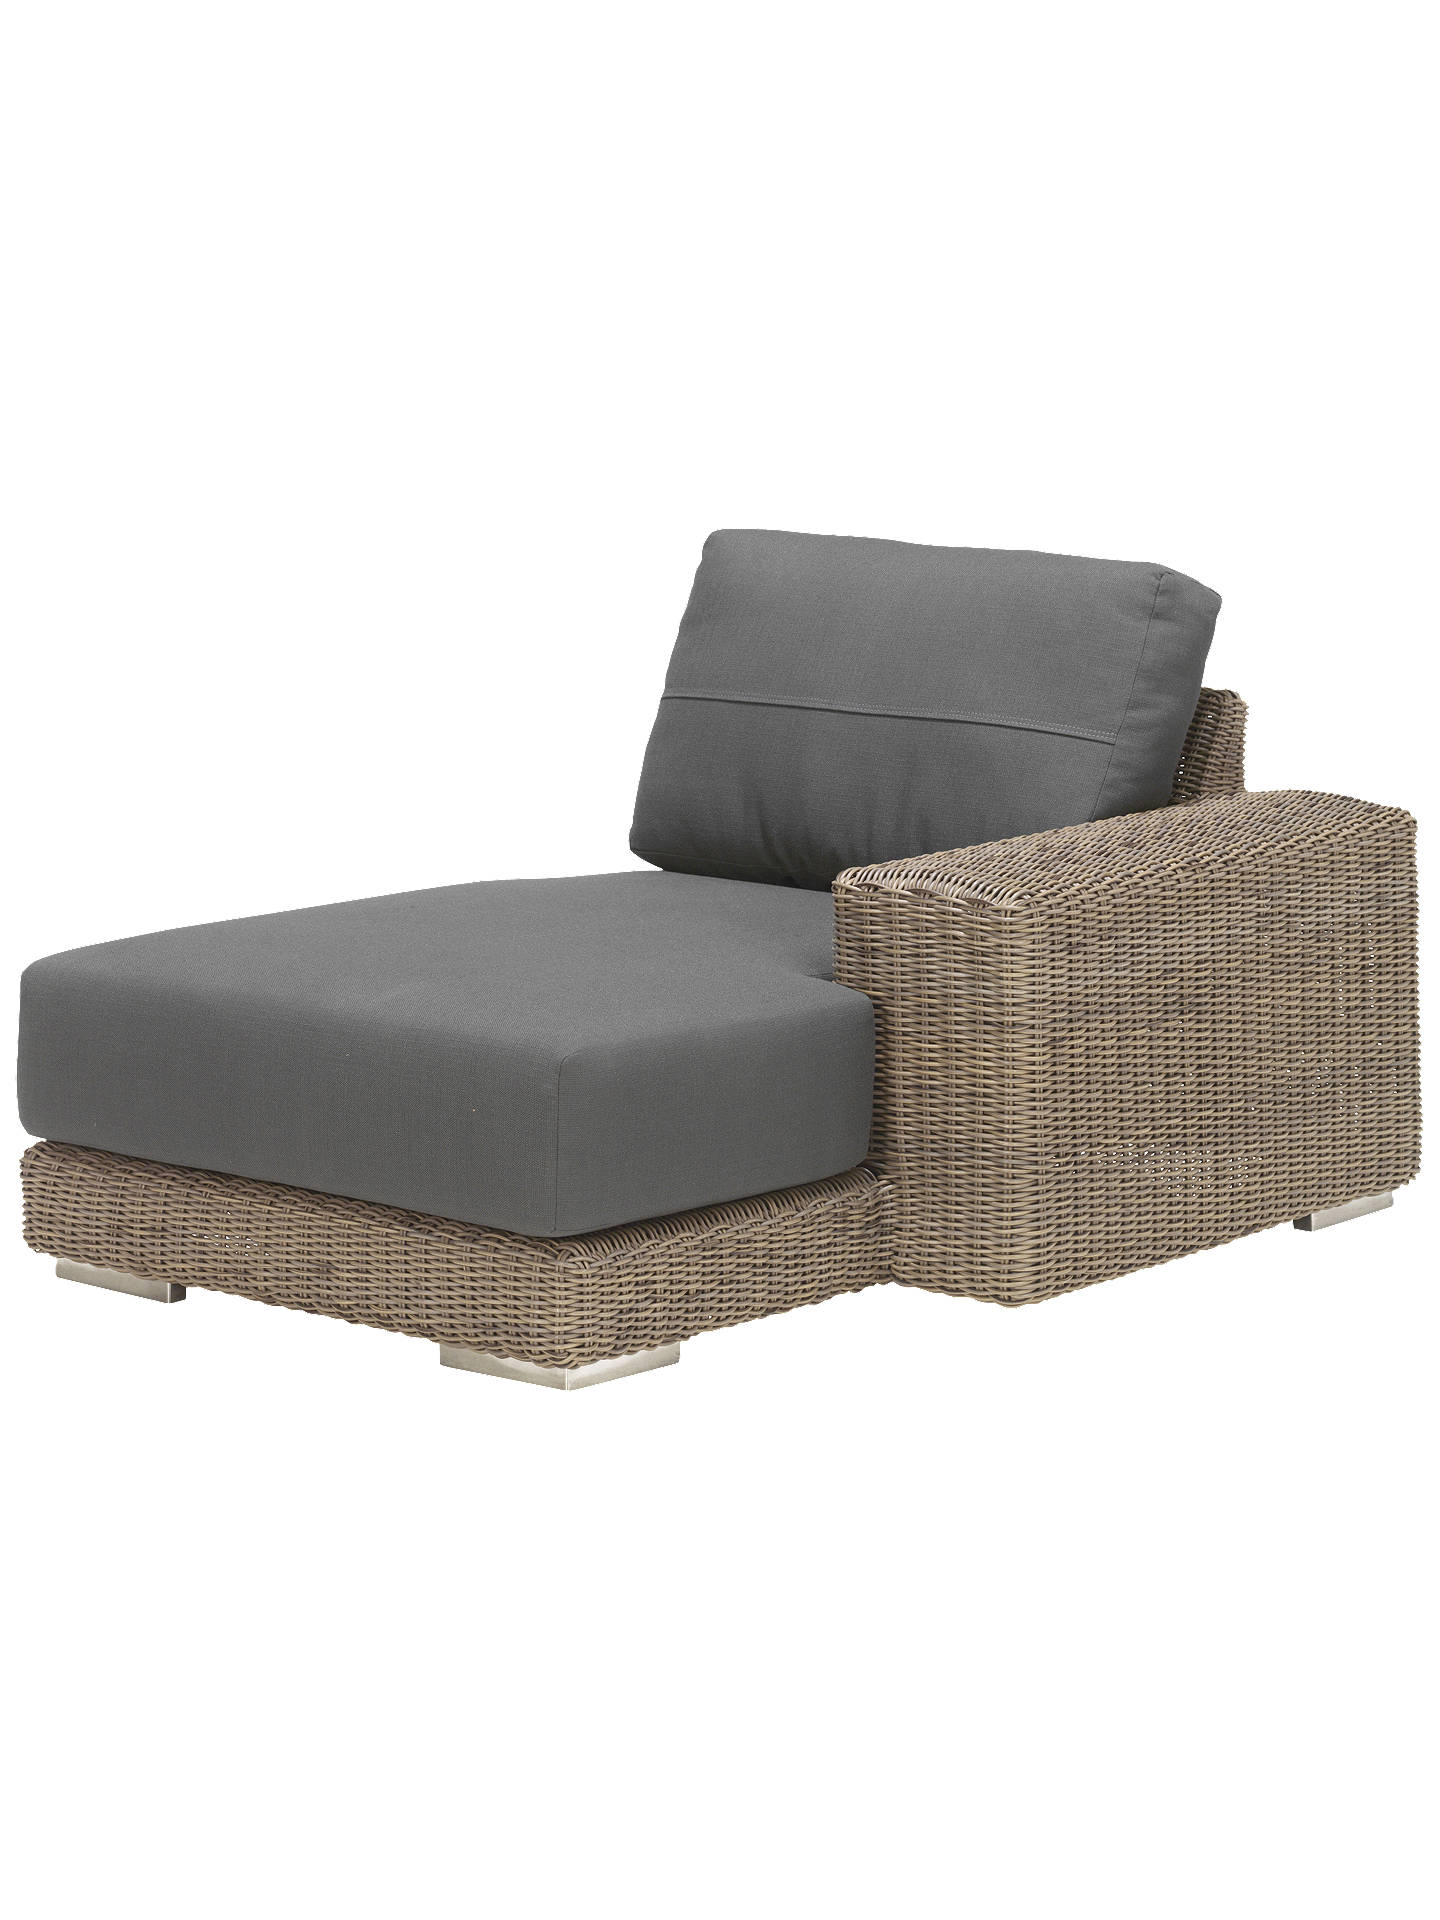 Buy4 seasons outdoor kingston modular garden chaise lounge left hand side online at johnlewis